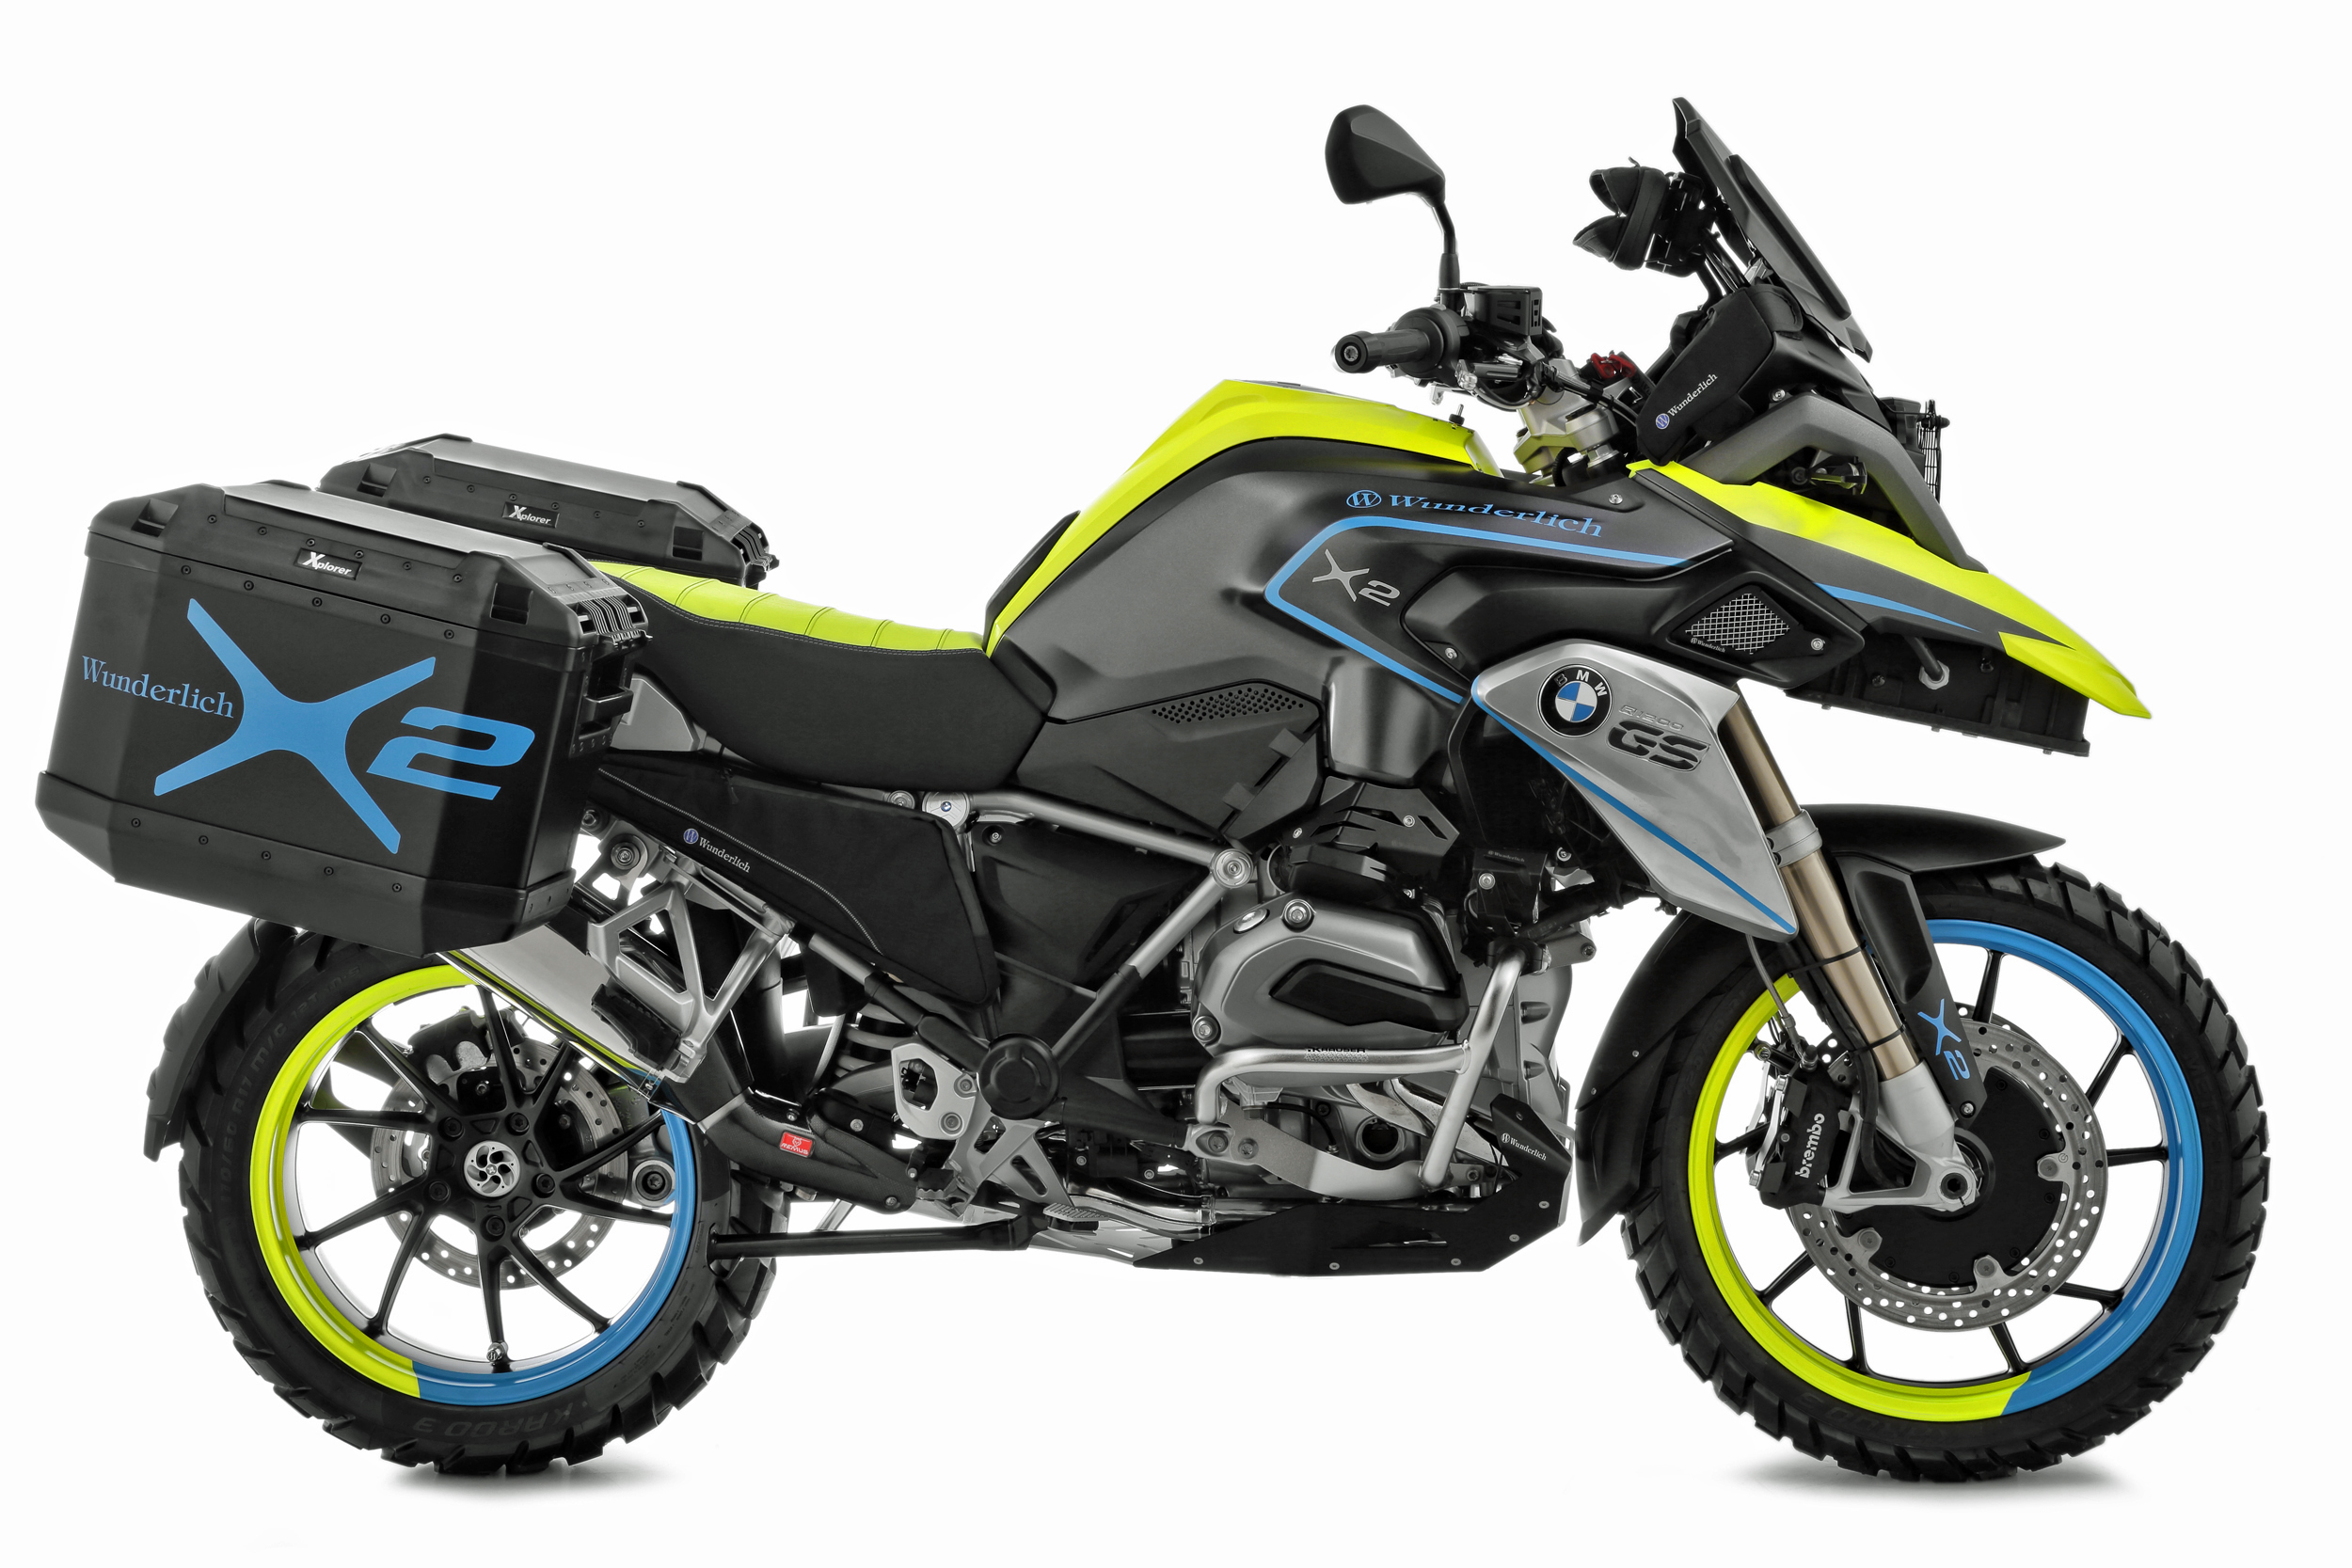 The two-wheel-drive R1200GS